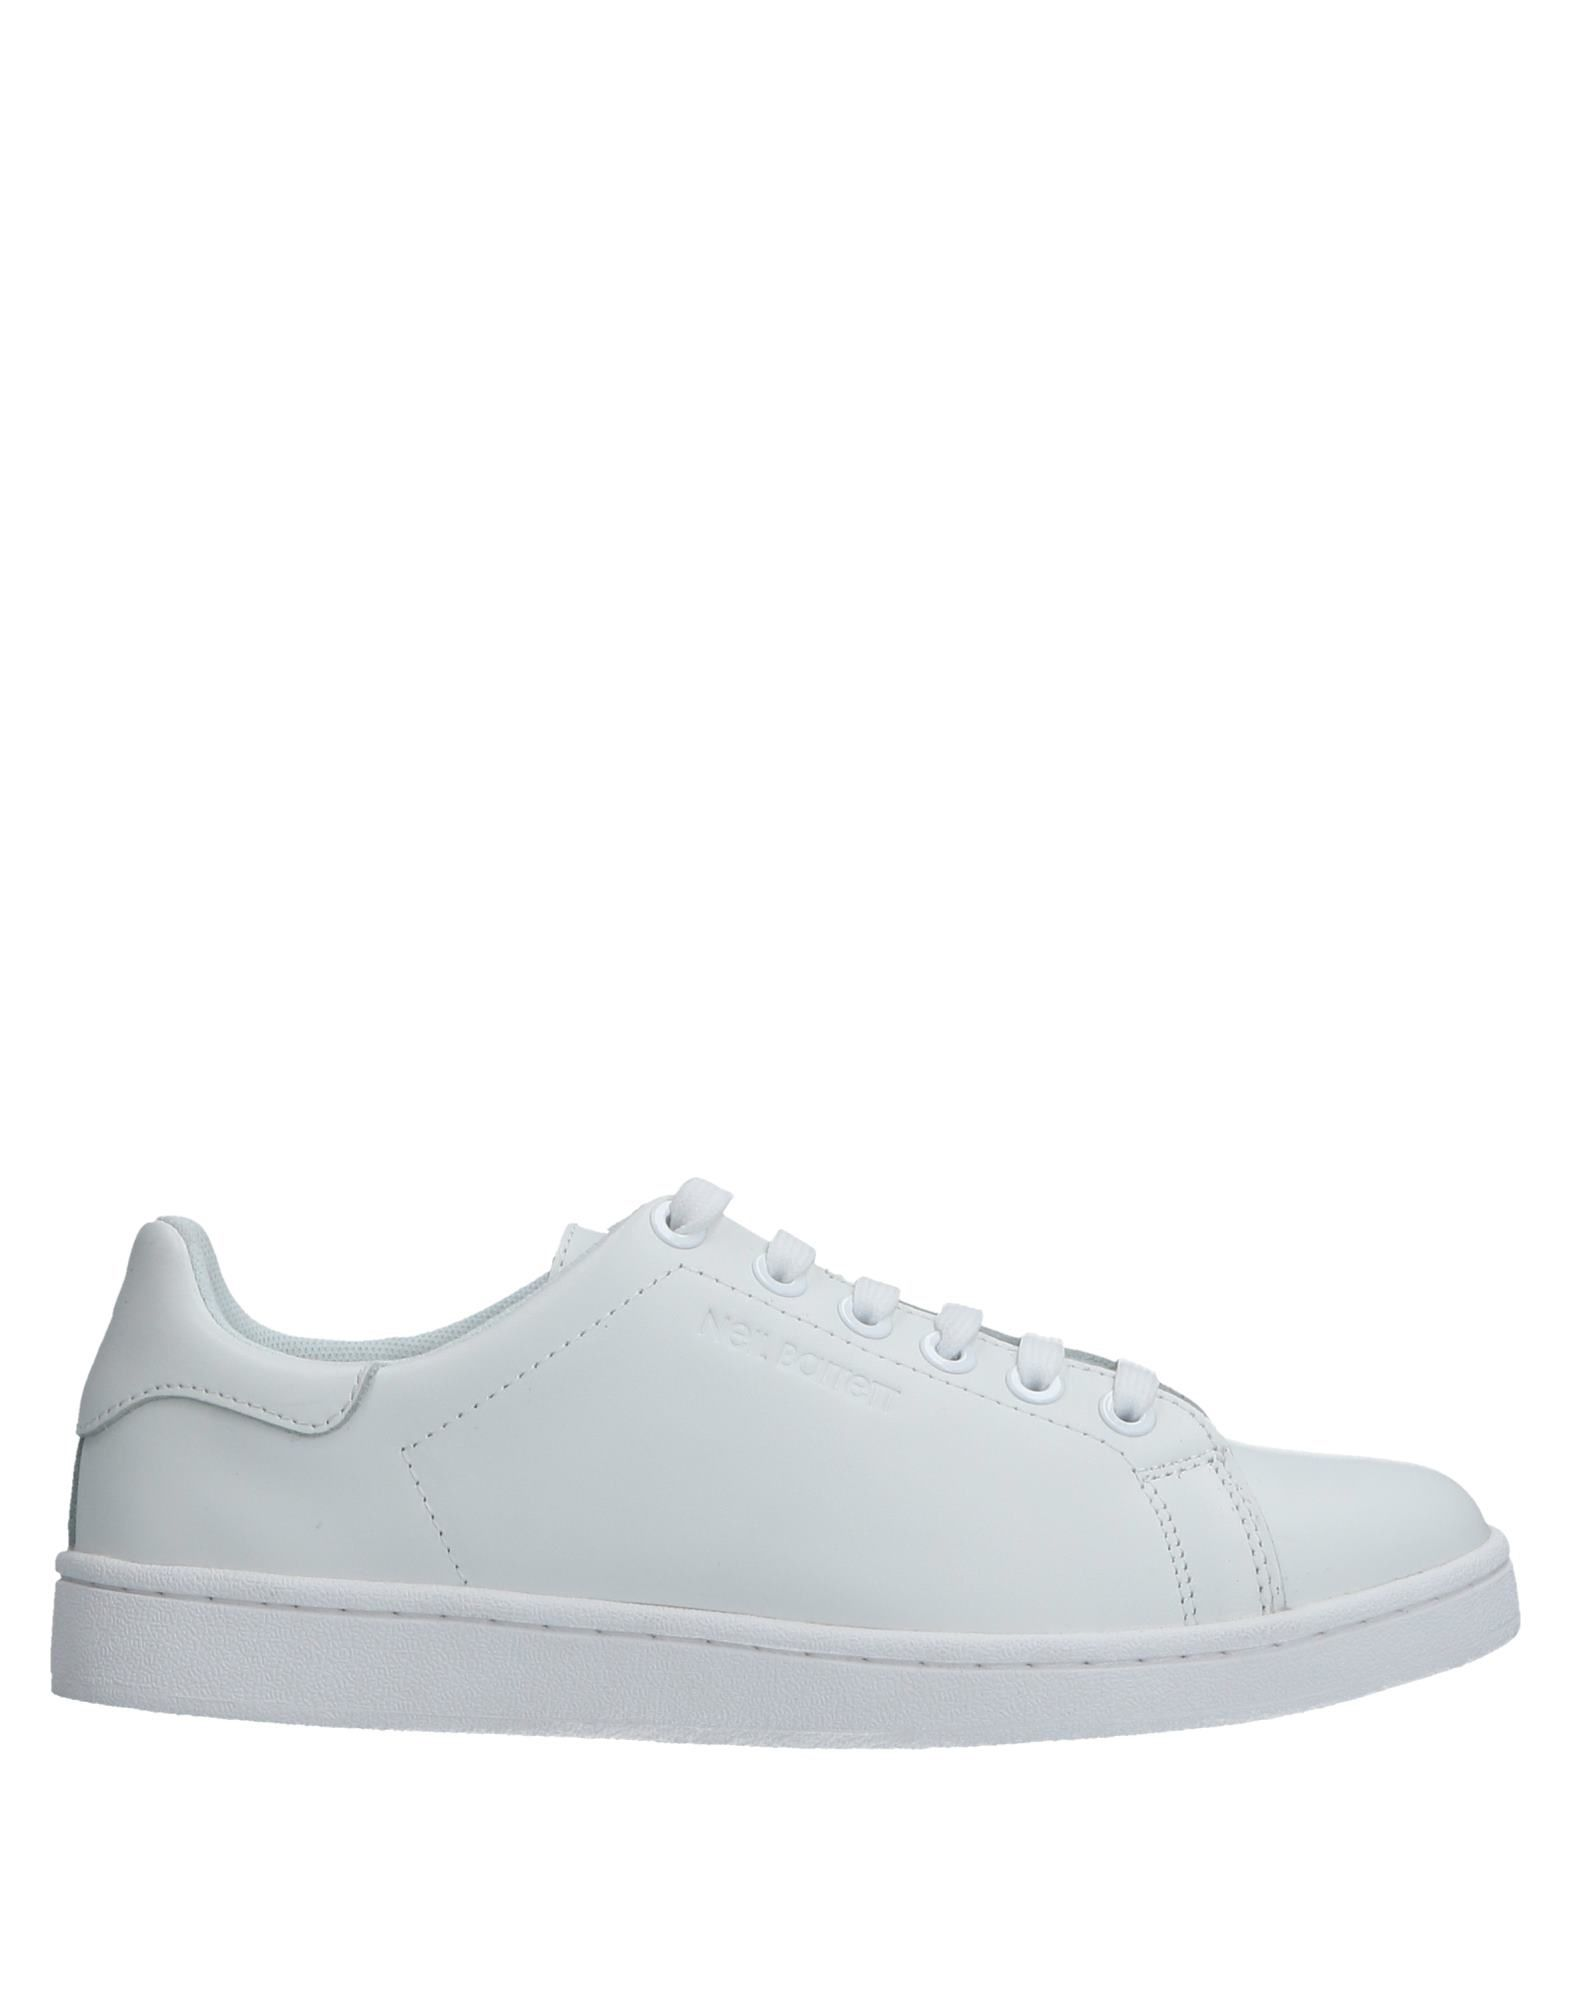 Sneakers Neil Barrett Donna - 11522455OR